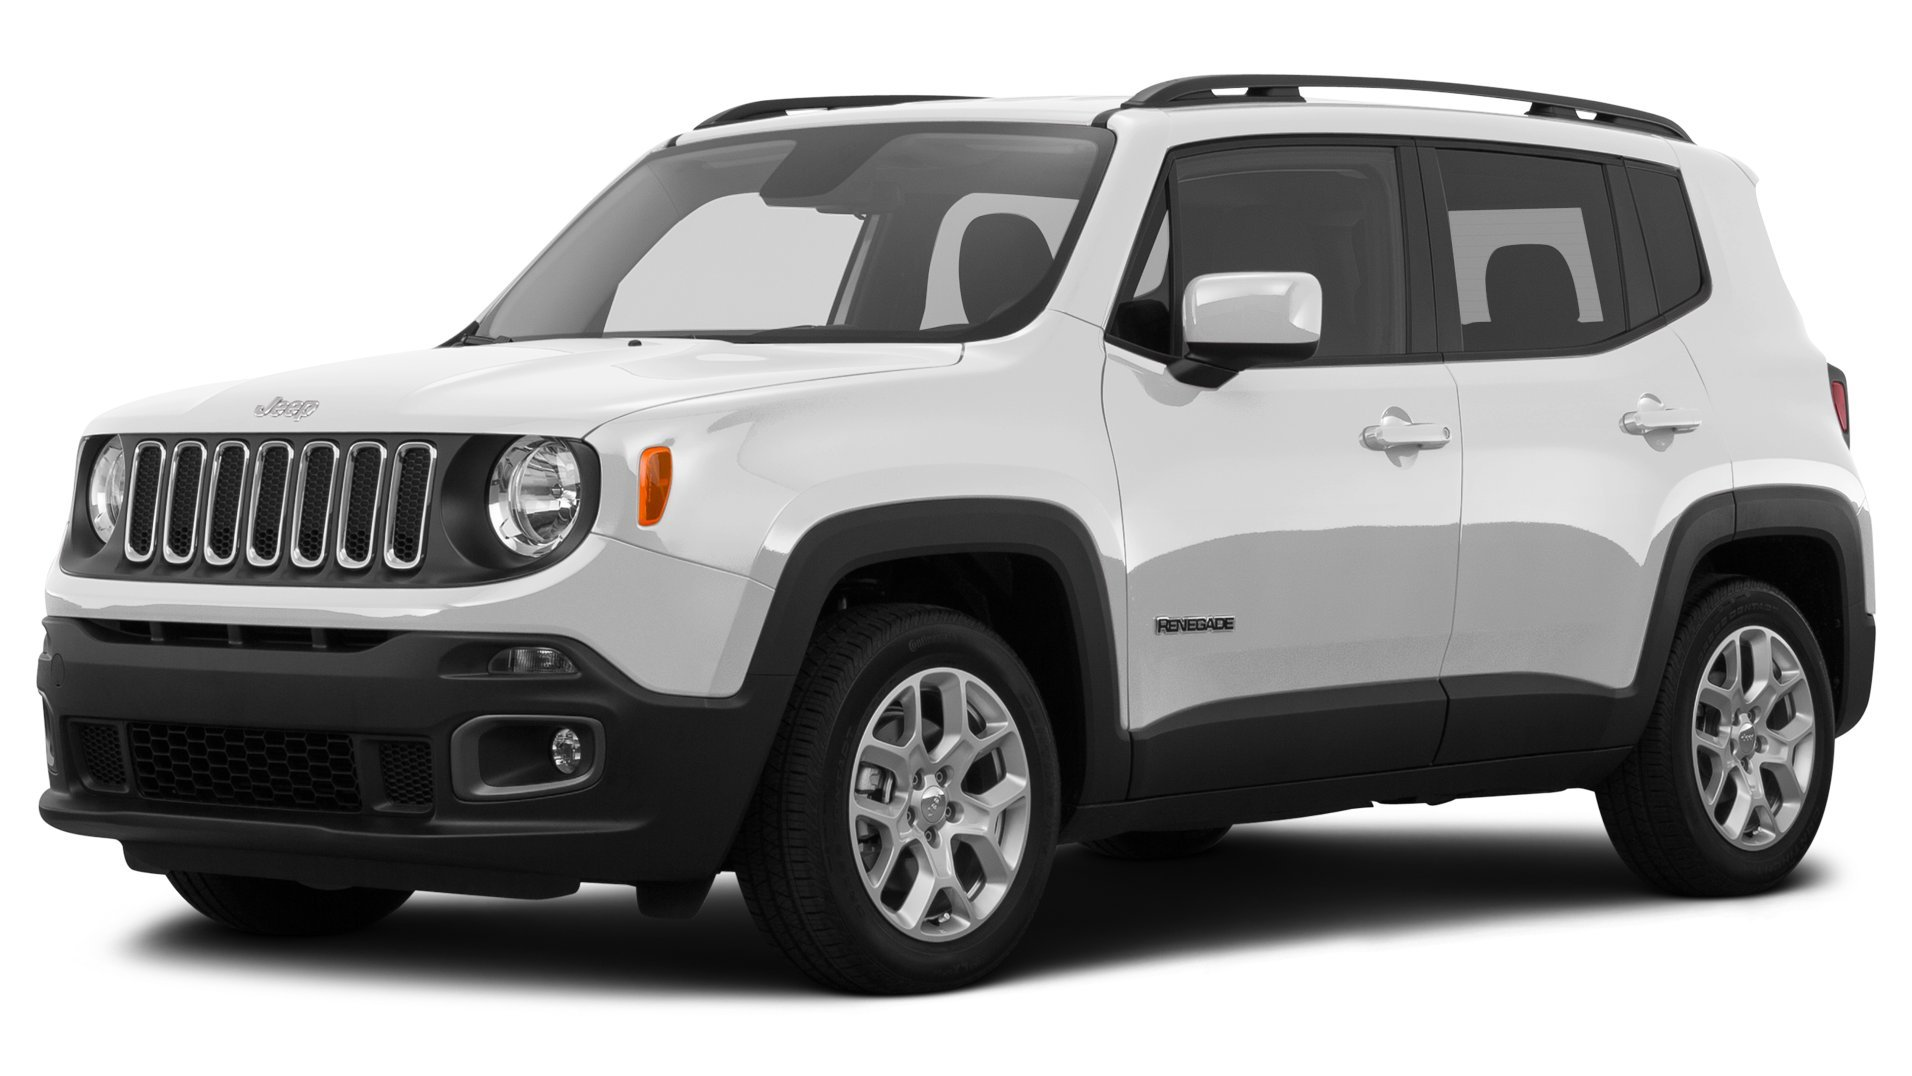 2015 jeep renegade reviews images and specs vehicles. Black Bedroom Furniture Sets. Home Design Ideas